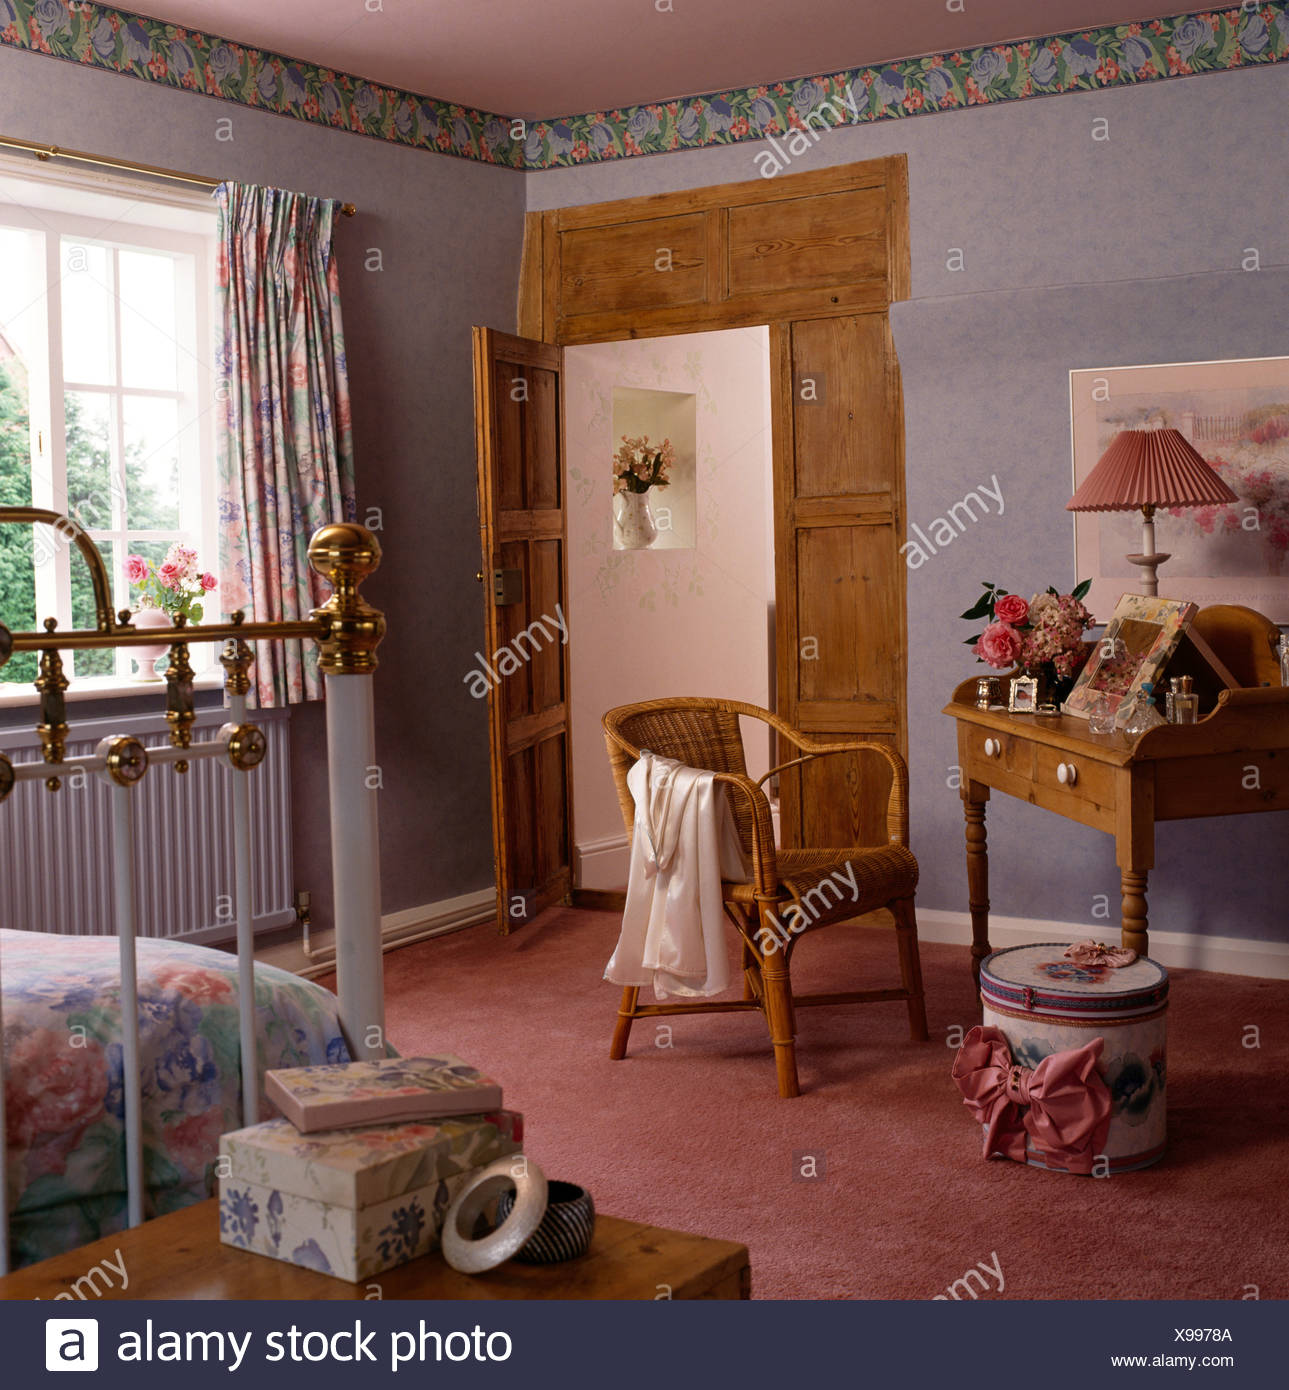 Wicker Chair And Pine Dressing Table In Cottage Bedroom With Wallpaper Border And Stripped Pine Doorway Stock Photo Alamy